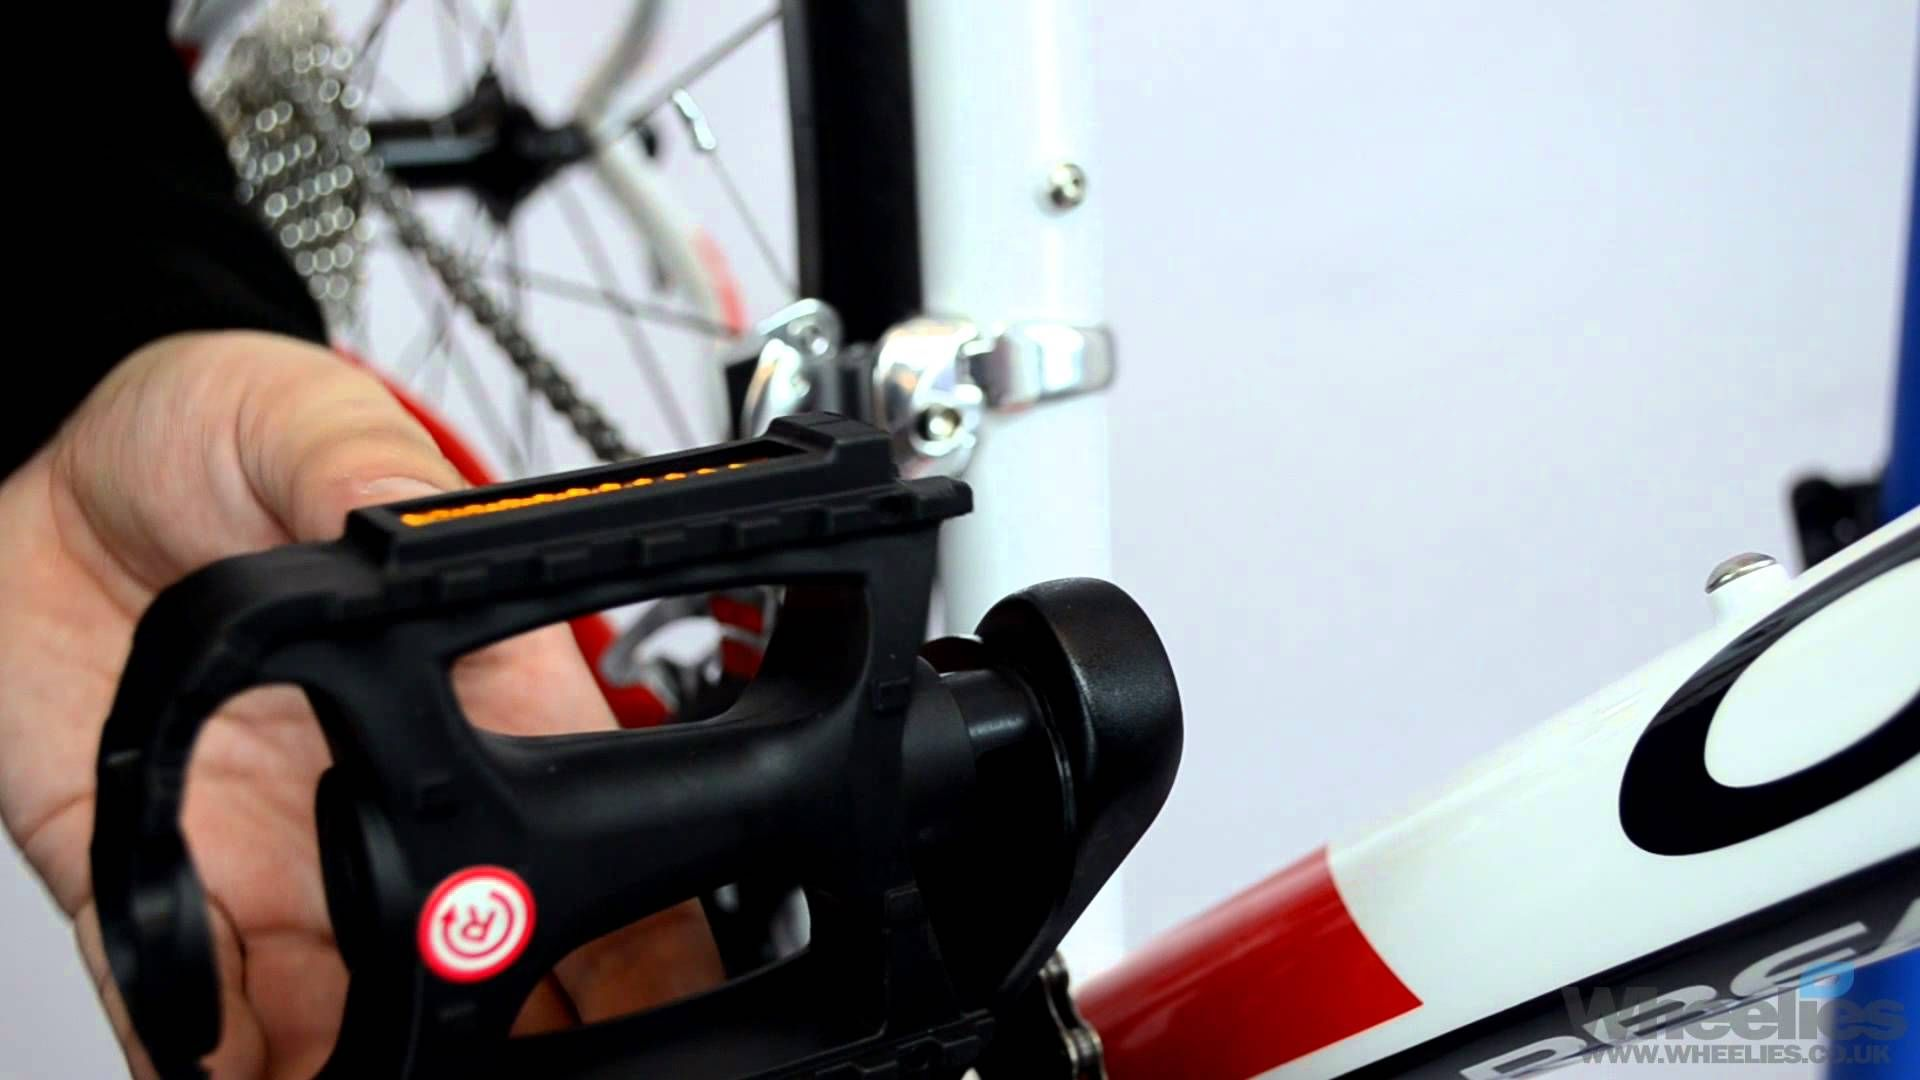 Fitting The Pedals To Your New Bike Is A Quick And Easy Job You